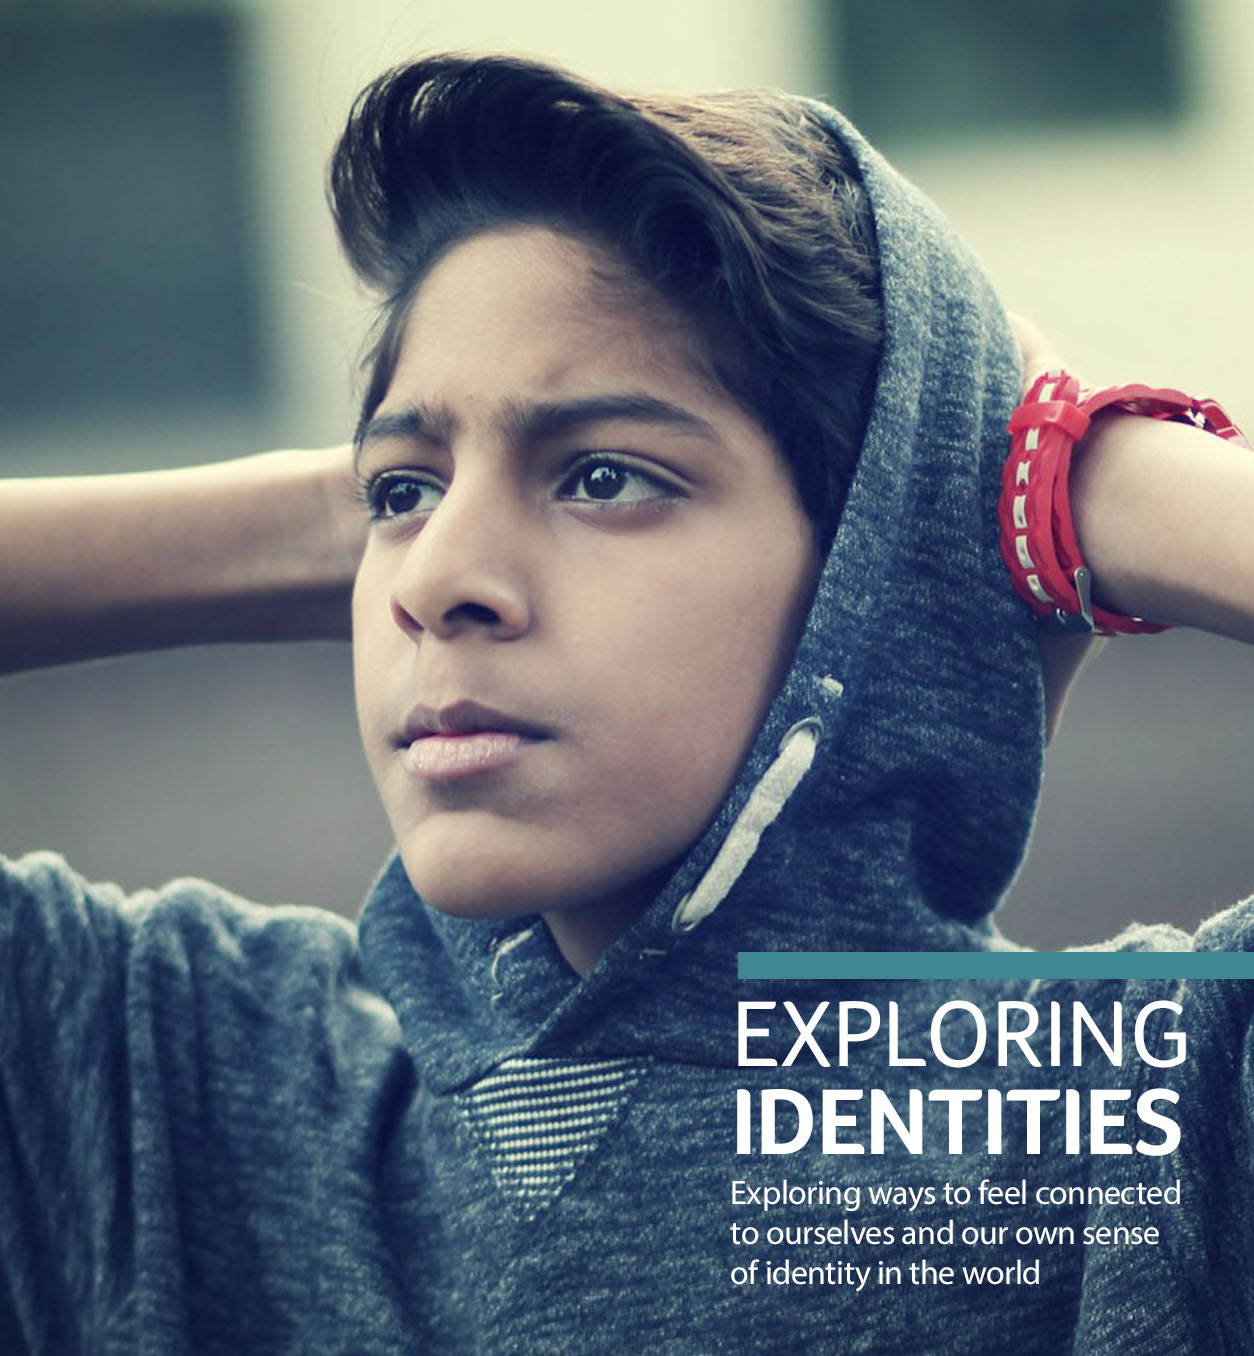 EXPLORING-IDENTITIES-Secondary.jpg